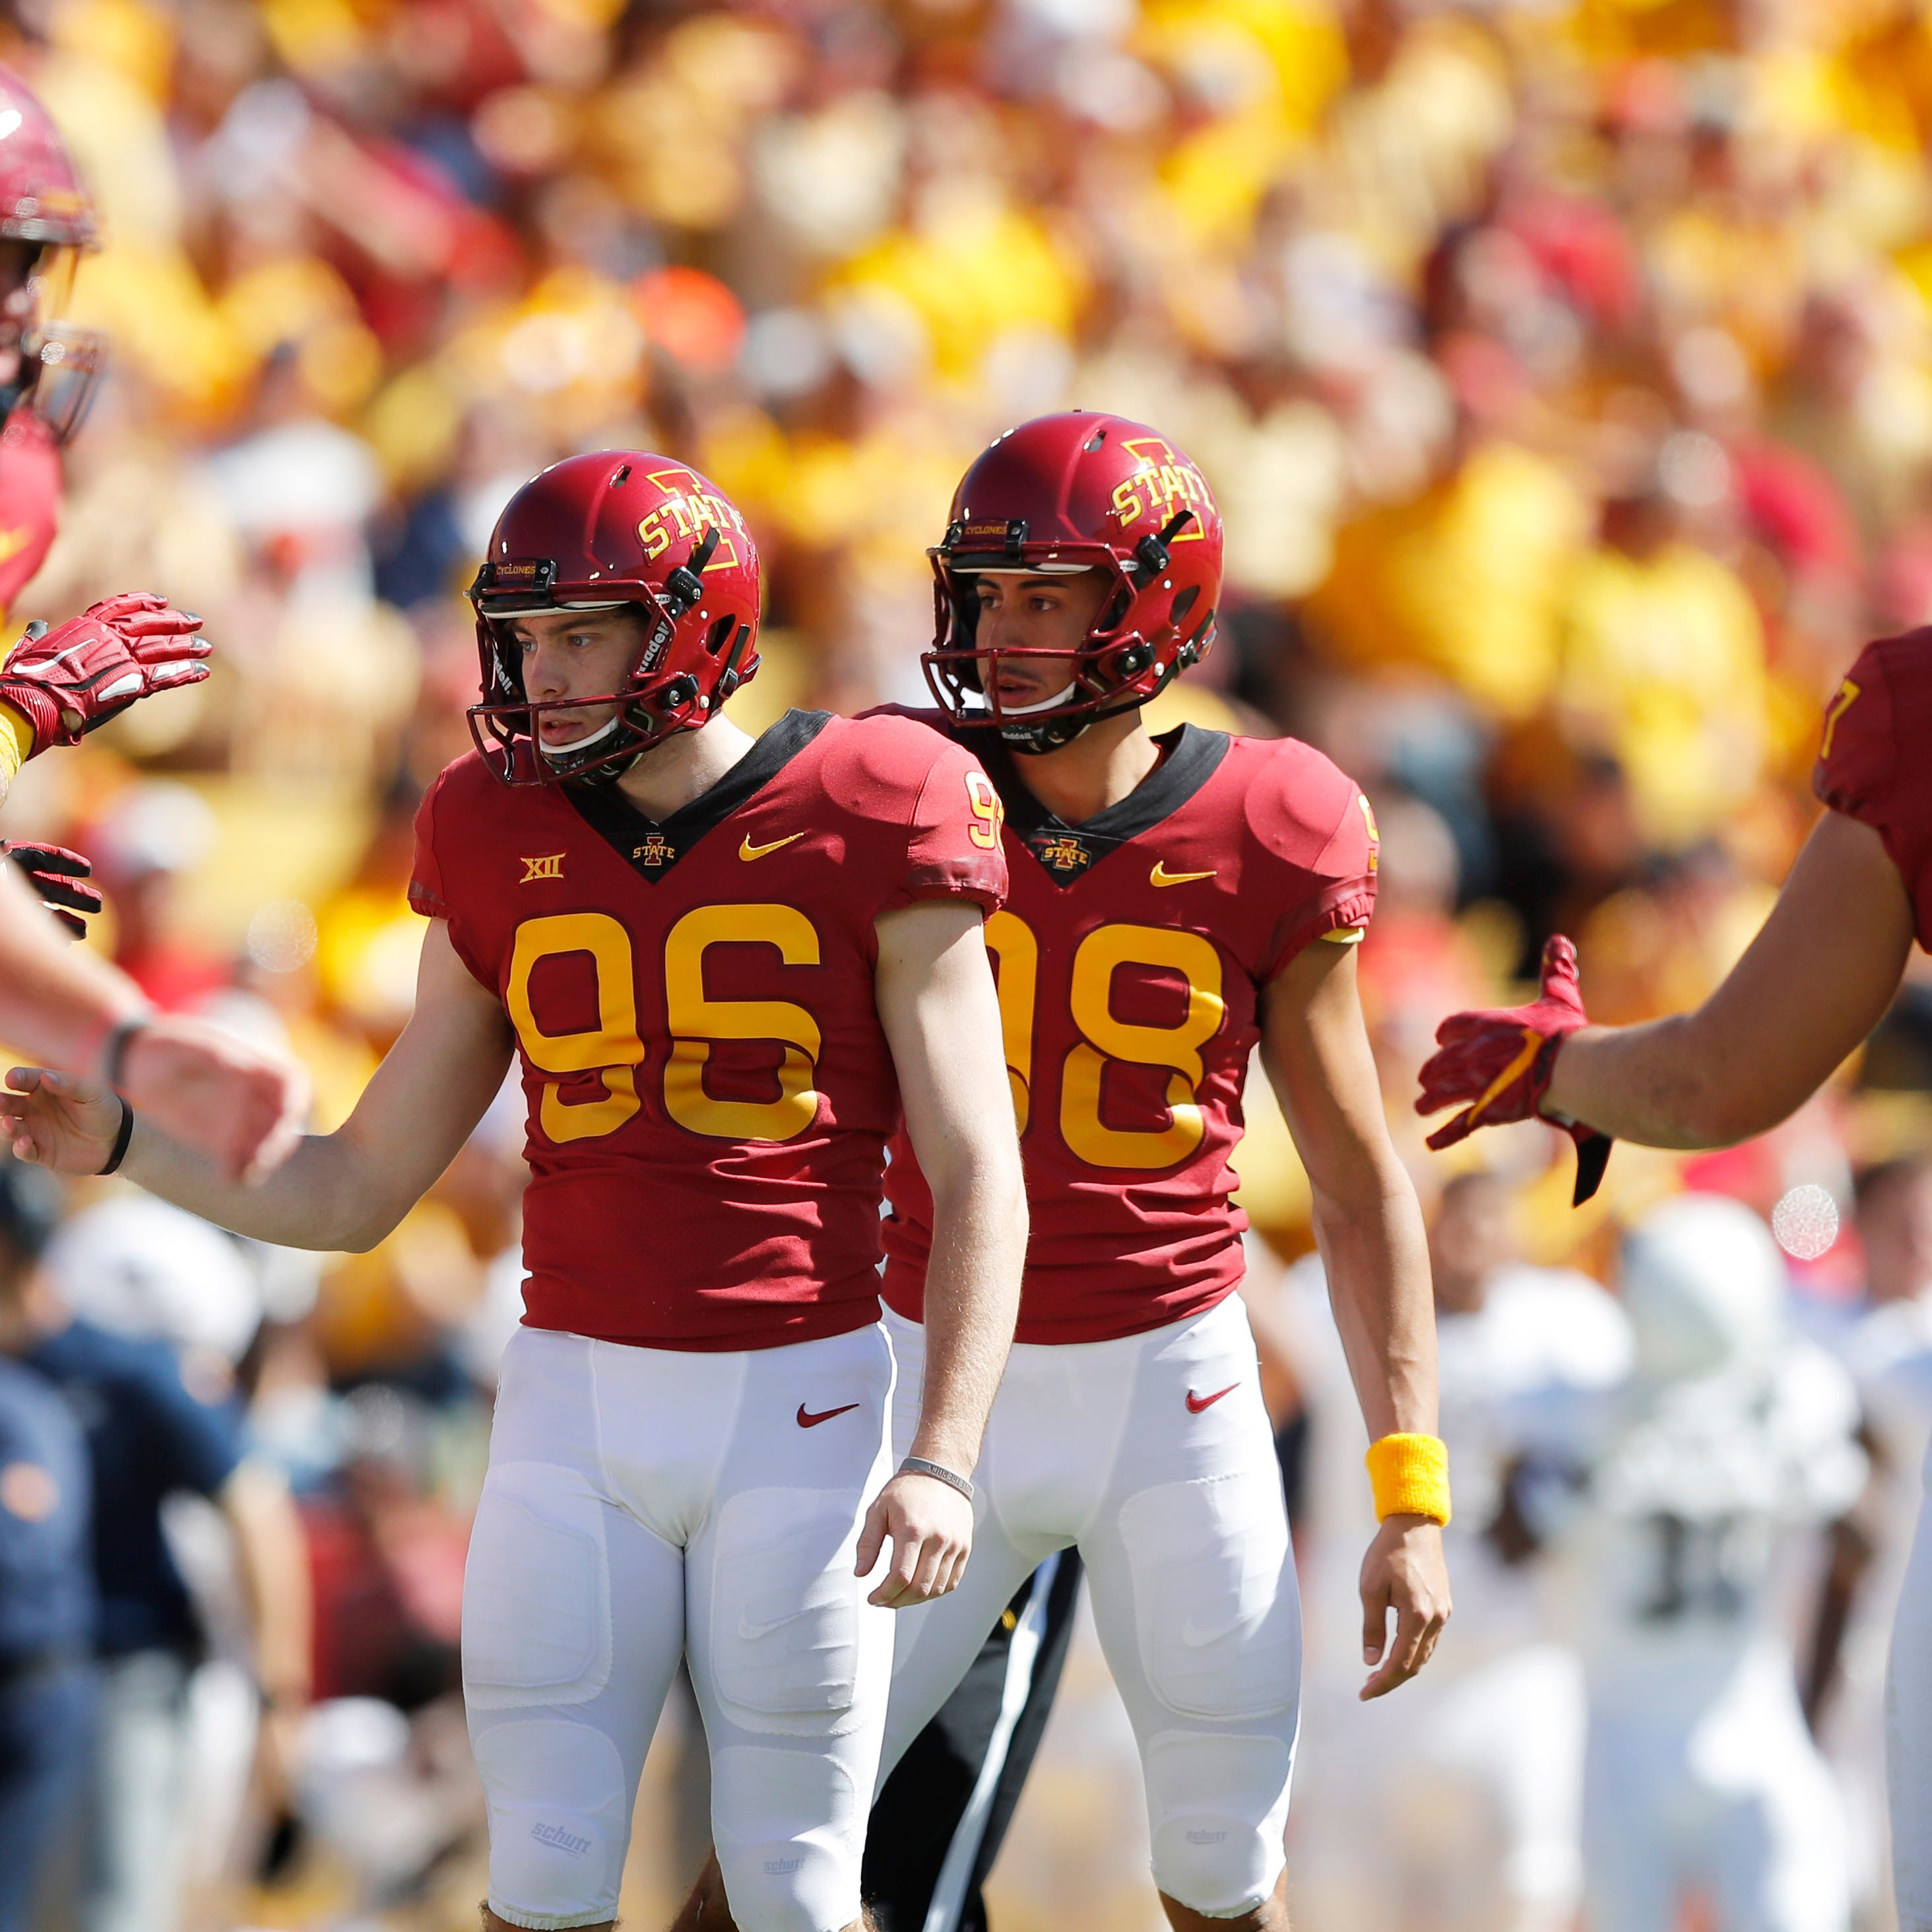 Walk-on kicker Connor Assalley becoming the surprise story for Iowa State